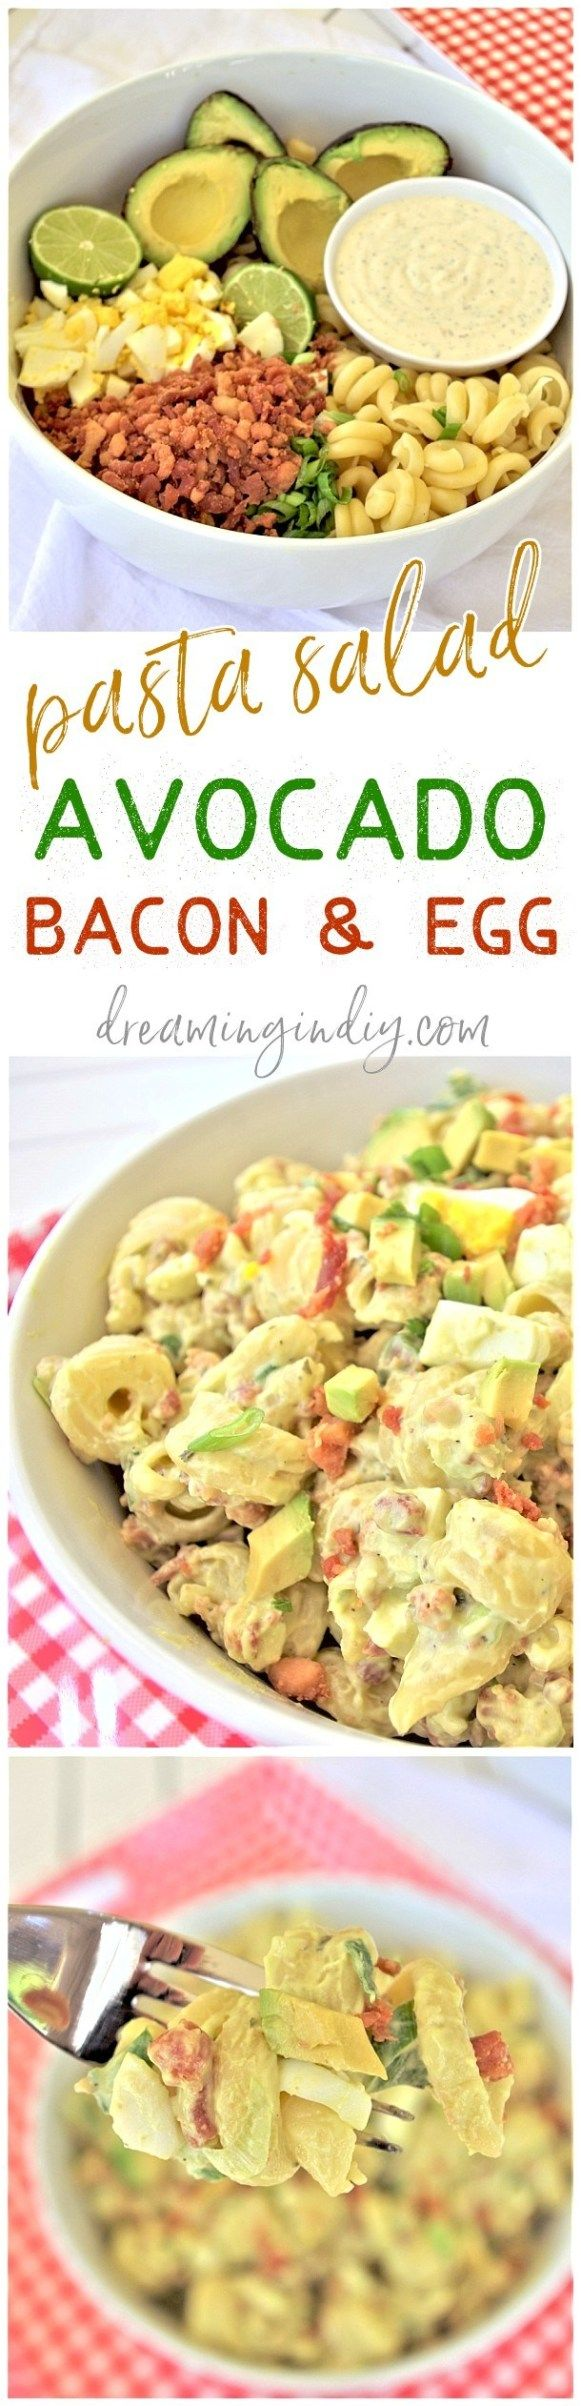 Easy Pasta Salads Recipes – The BEST Yummy Barbecue Side Dishes, Potluck Favorites and Summer Dinner Party Crowd Pleasers